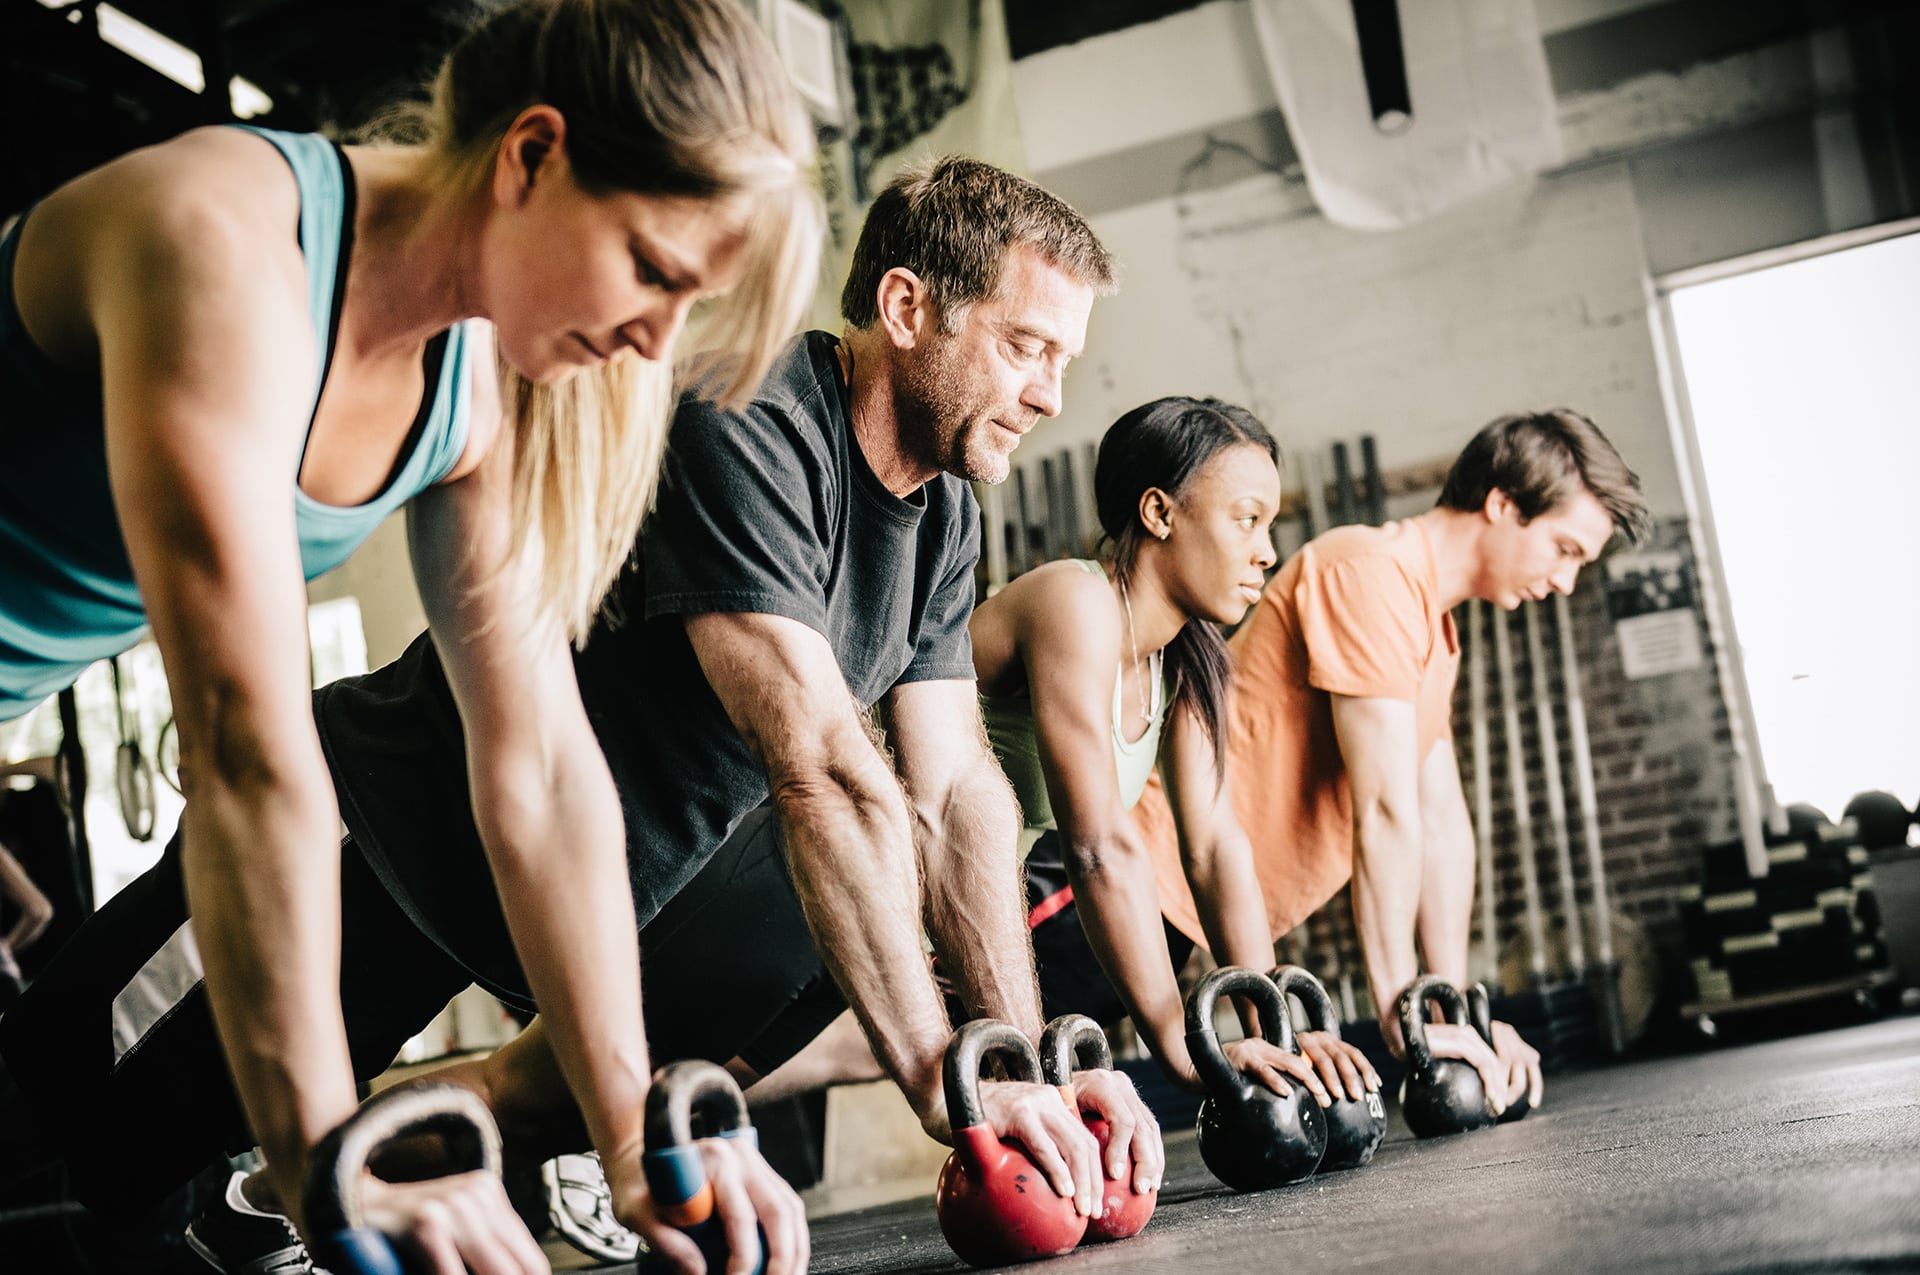 Group of people planking on kettle bells in studio